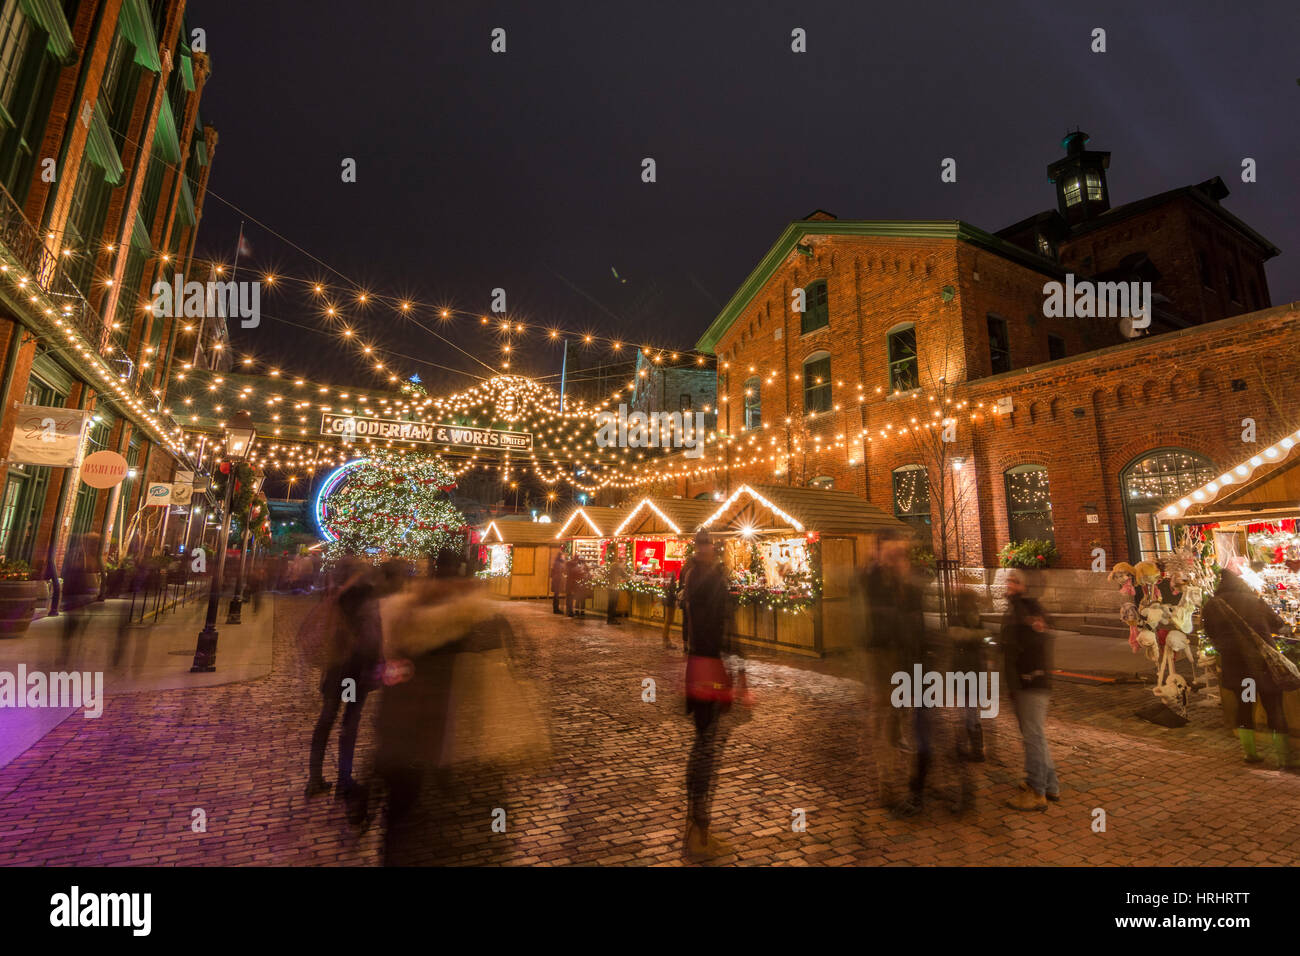 Toronto Christmas market in the Distillery district, Toronto, Ontario, Canada, North America Stock Photo